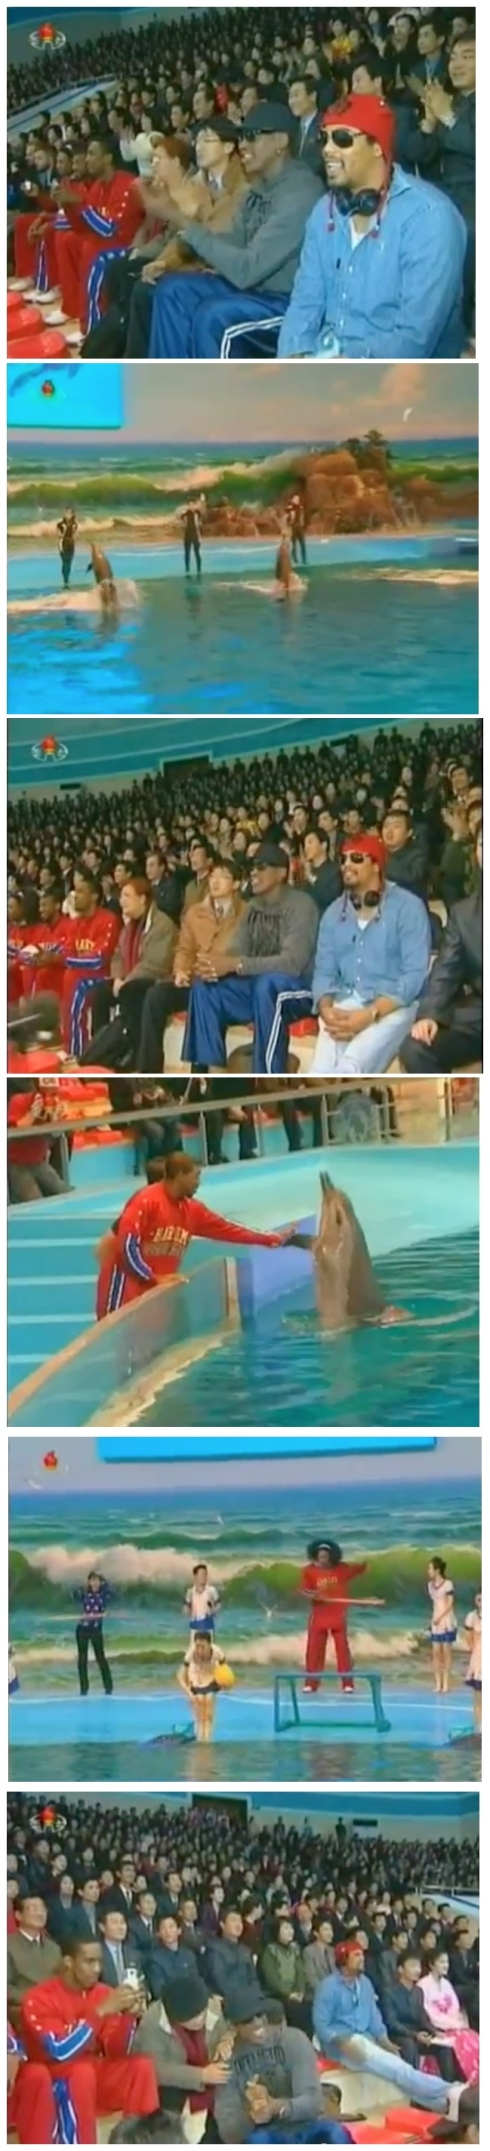 Dennis Rodman, Harlem Globetrotters and other members fo the US basketball delegation watch and participate in a show at the Rungra Dolphinarium in Pyongyang on 1 March 2013 (Photos: KCTV screengrabs)